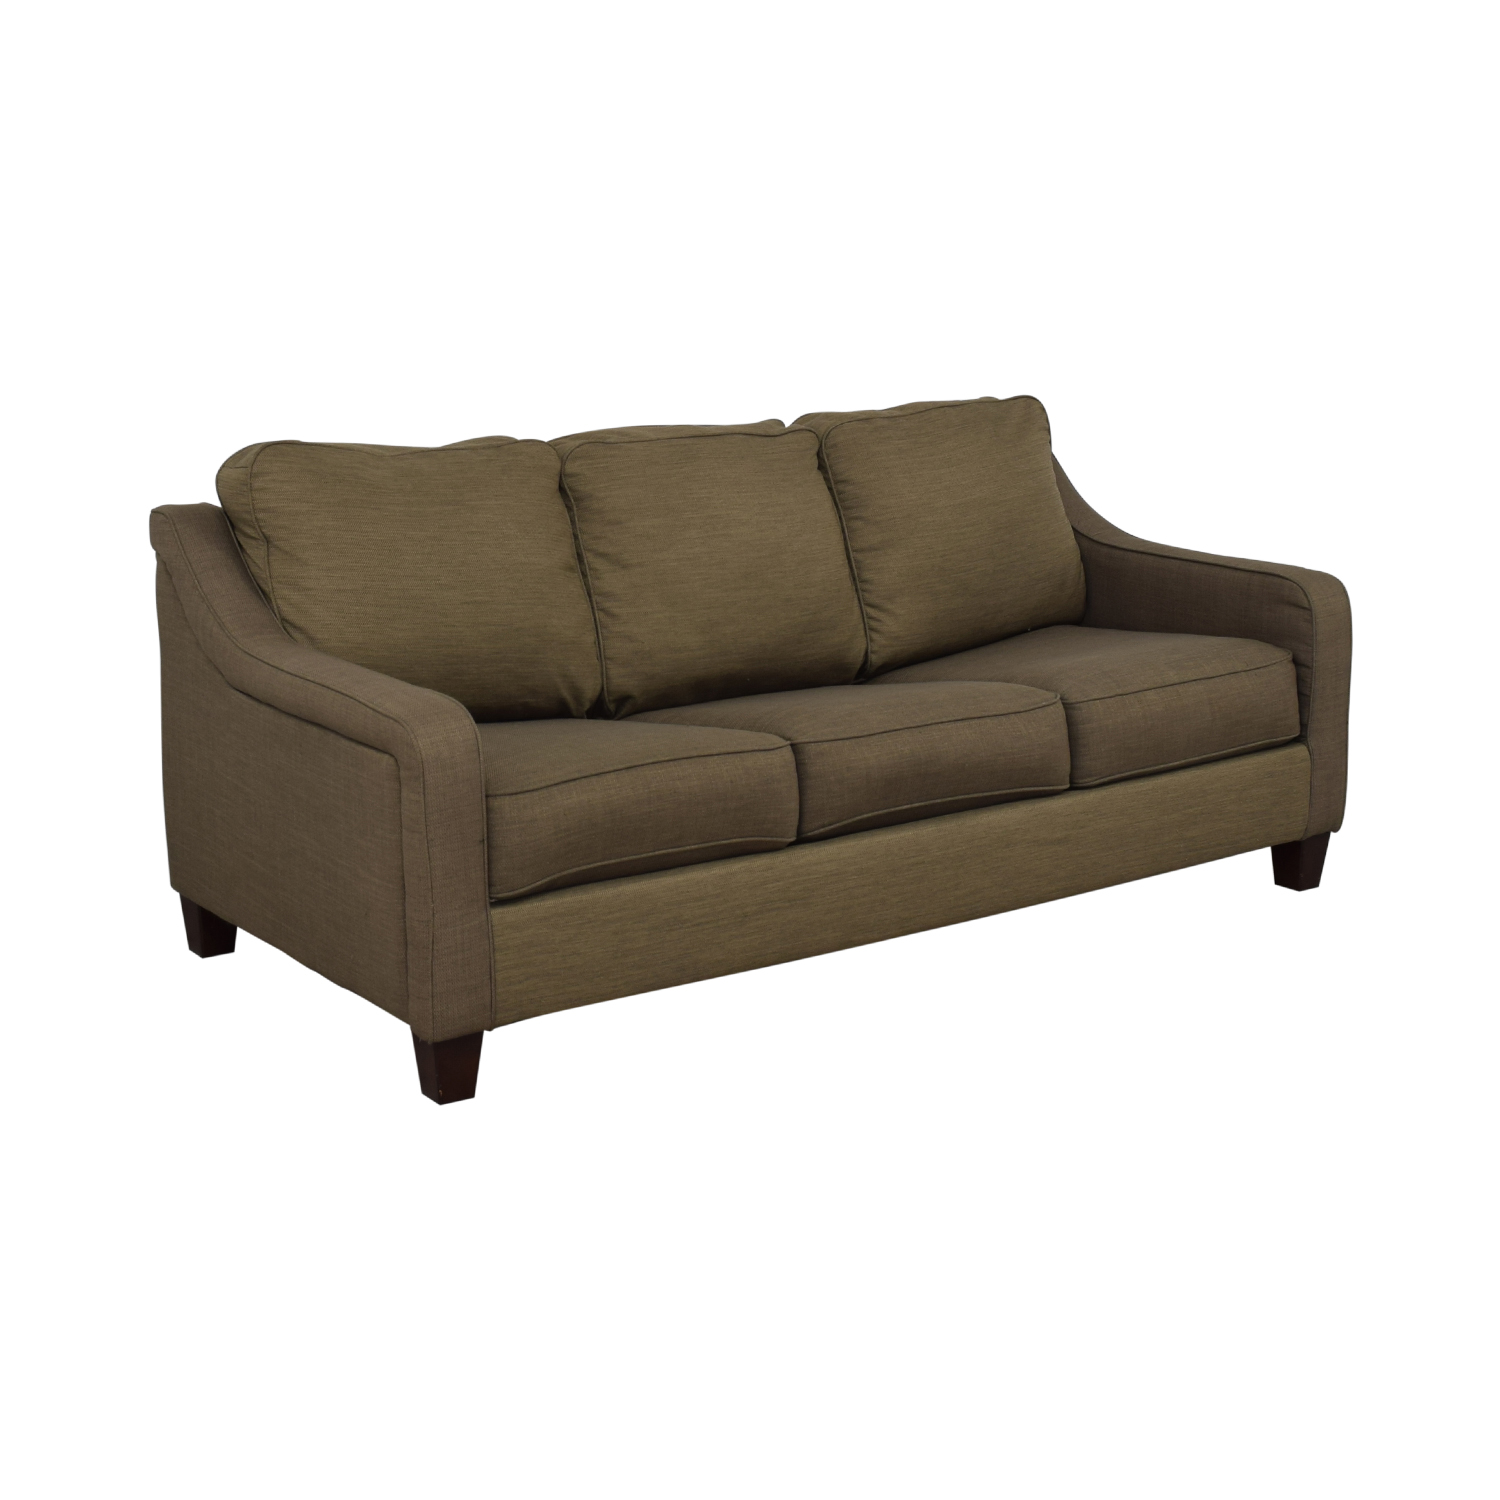 78% OFF   Jennifer Furniture Jennifer Furniture Convertible Sofa Queen Bed  / Sofas